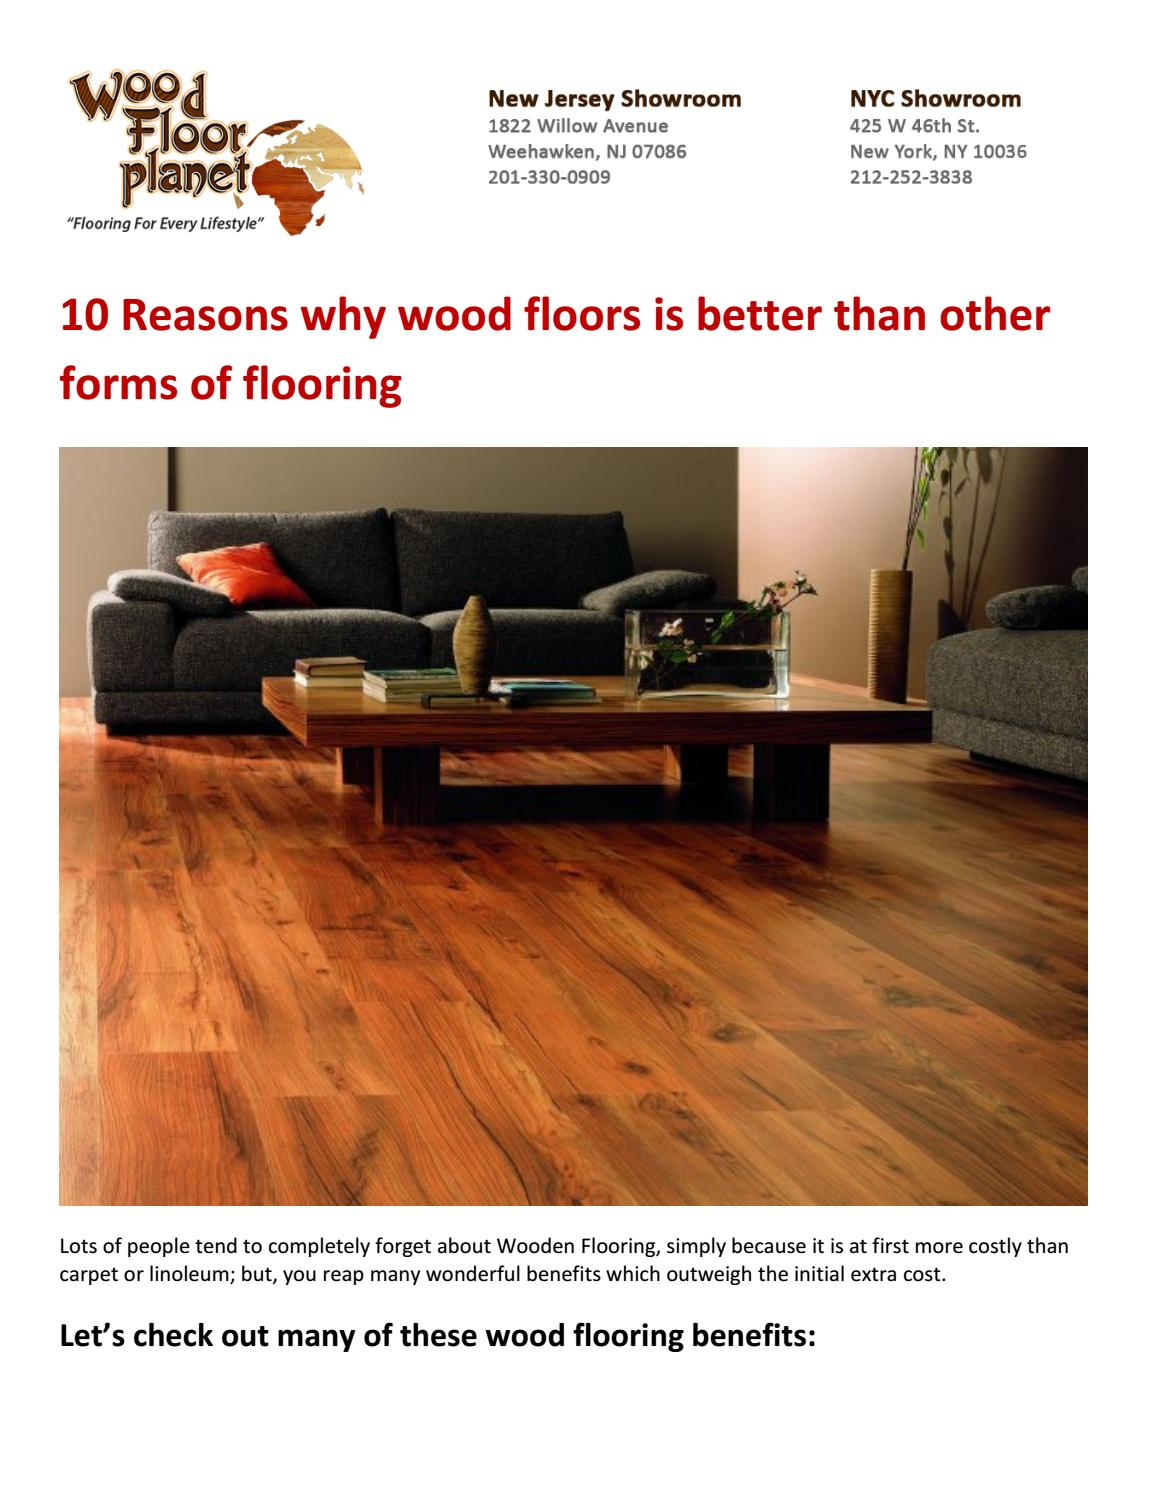 Why is wood floor better?